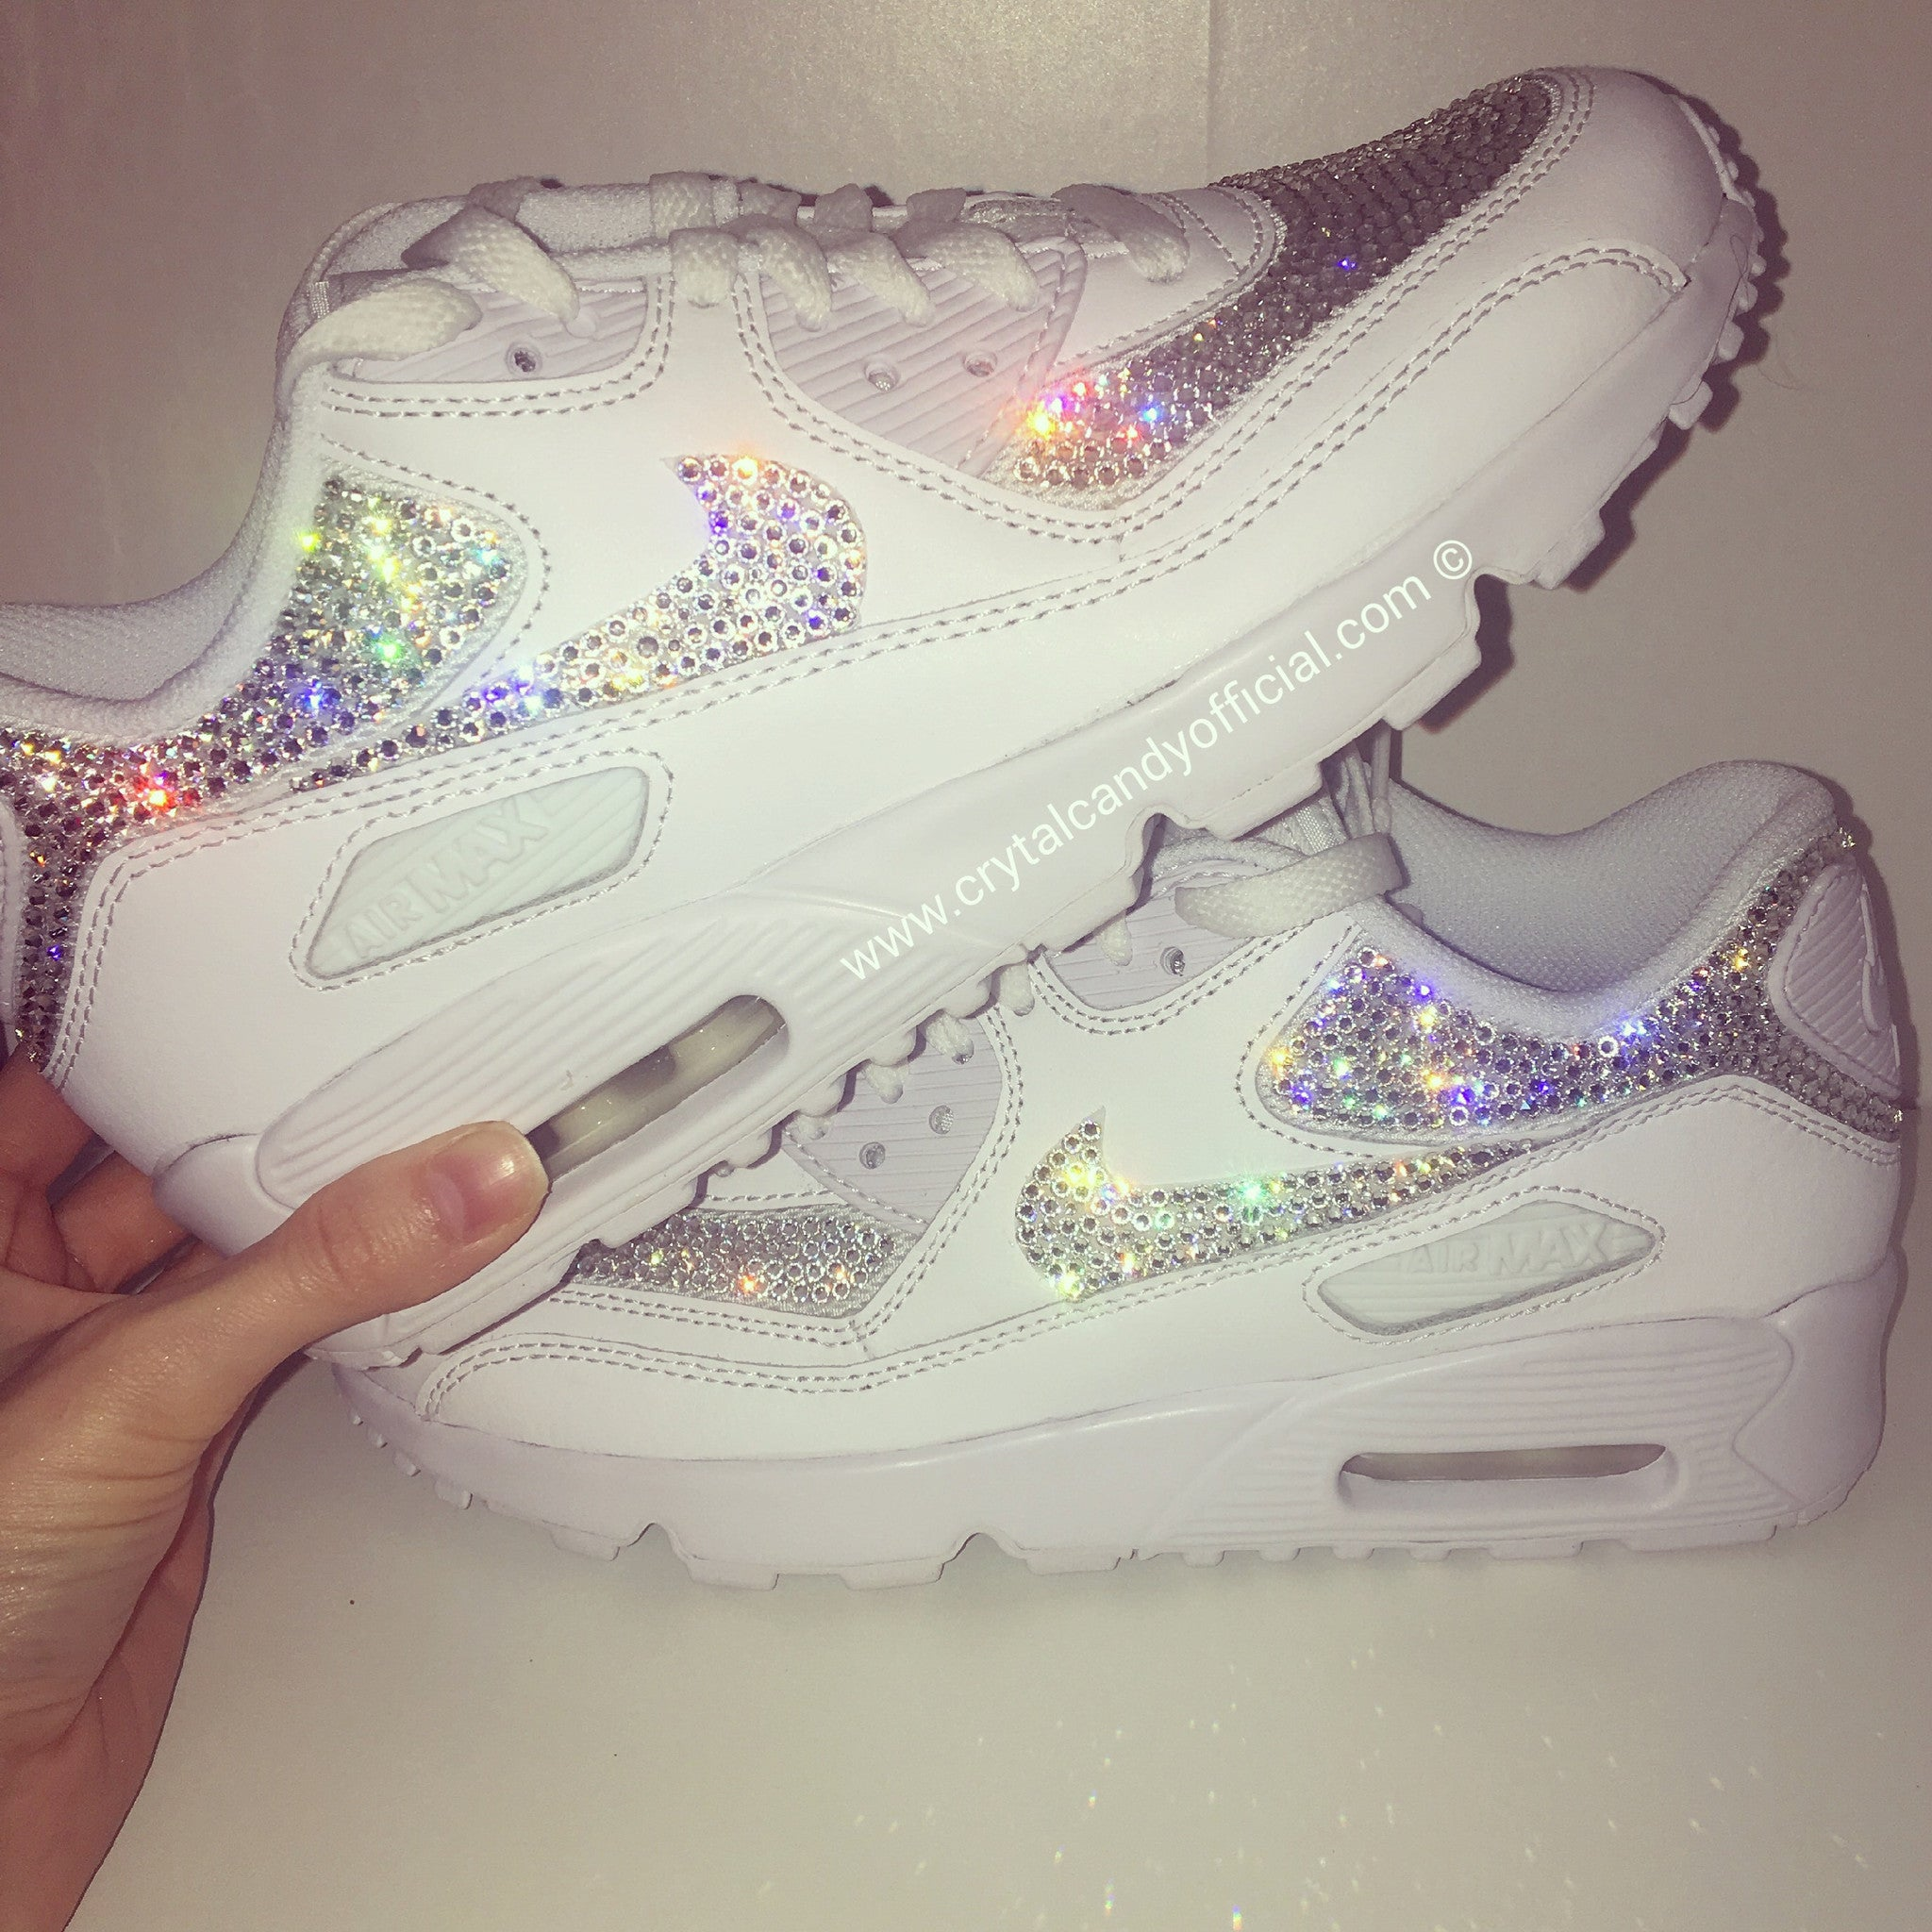 Crystal Nike Air Max 90's in White